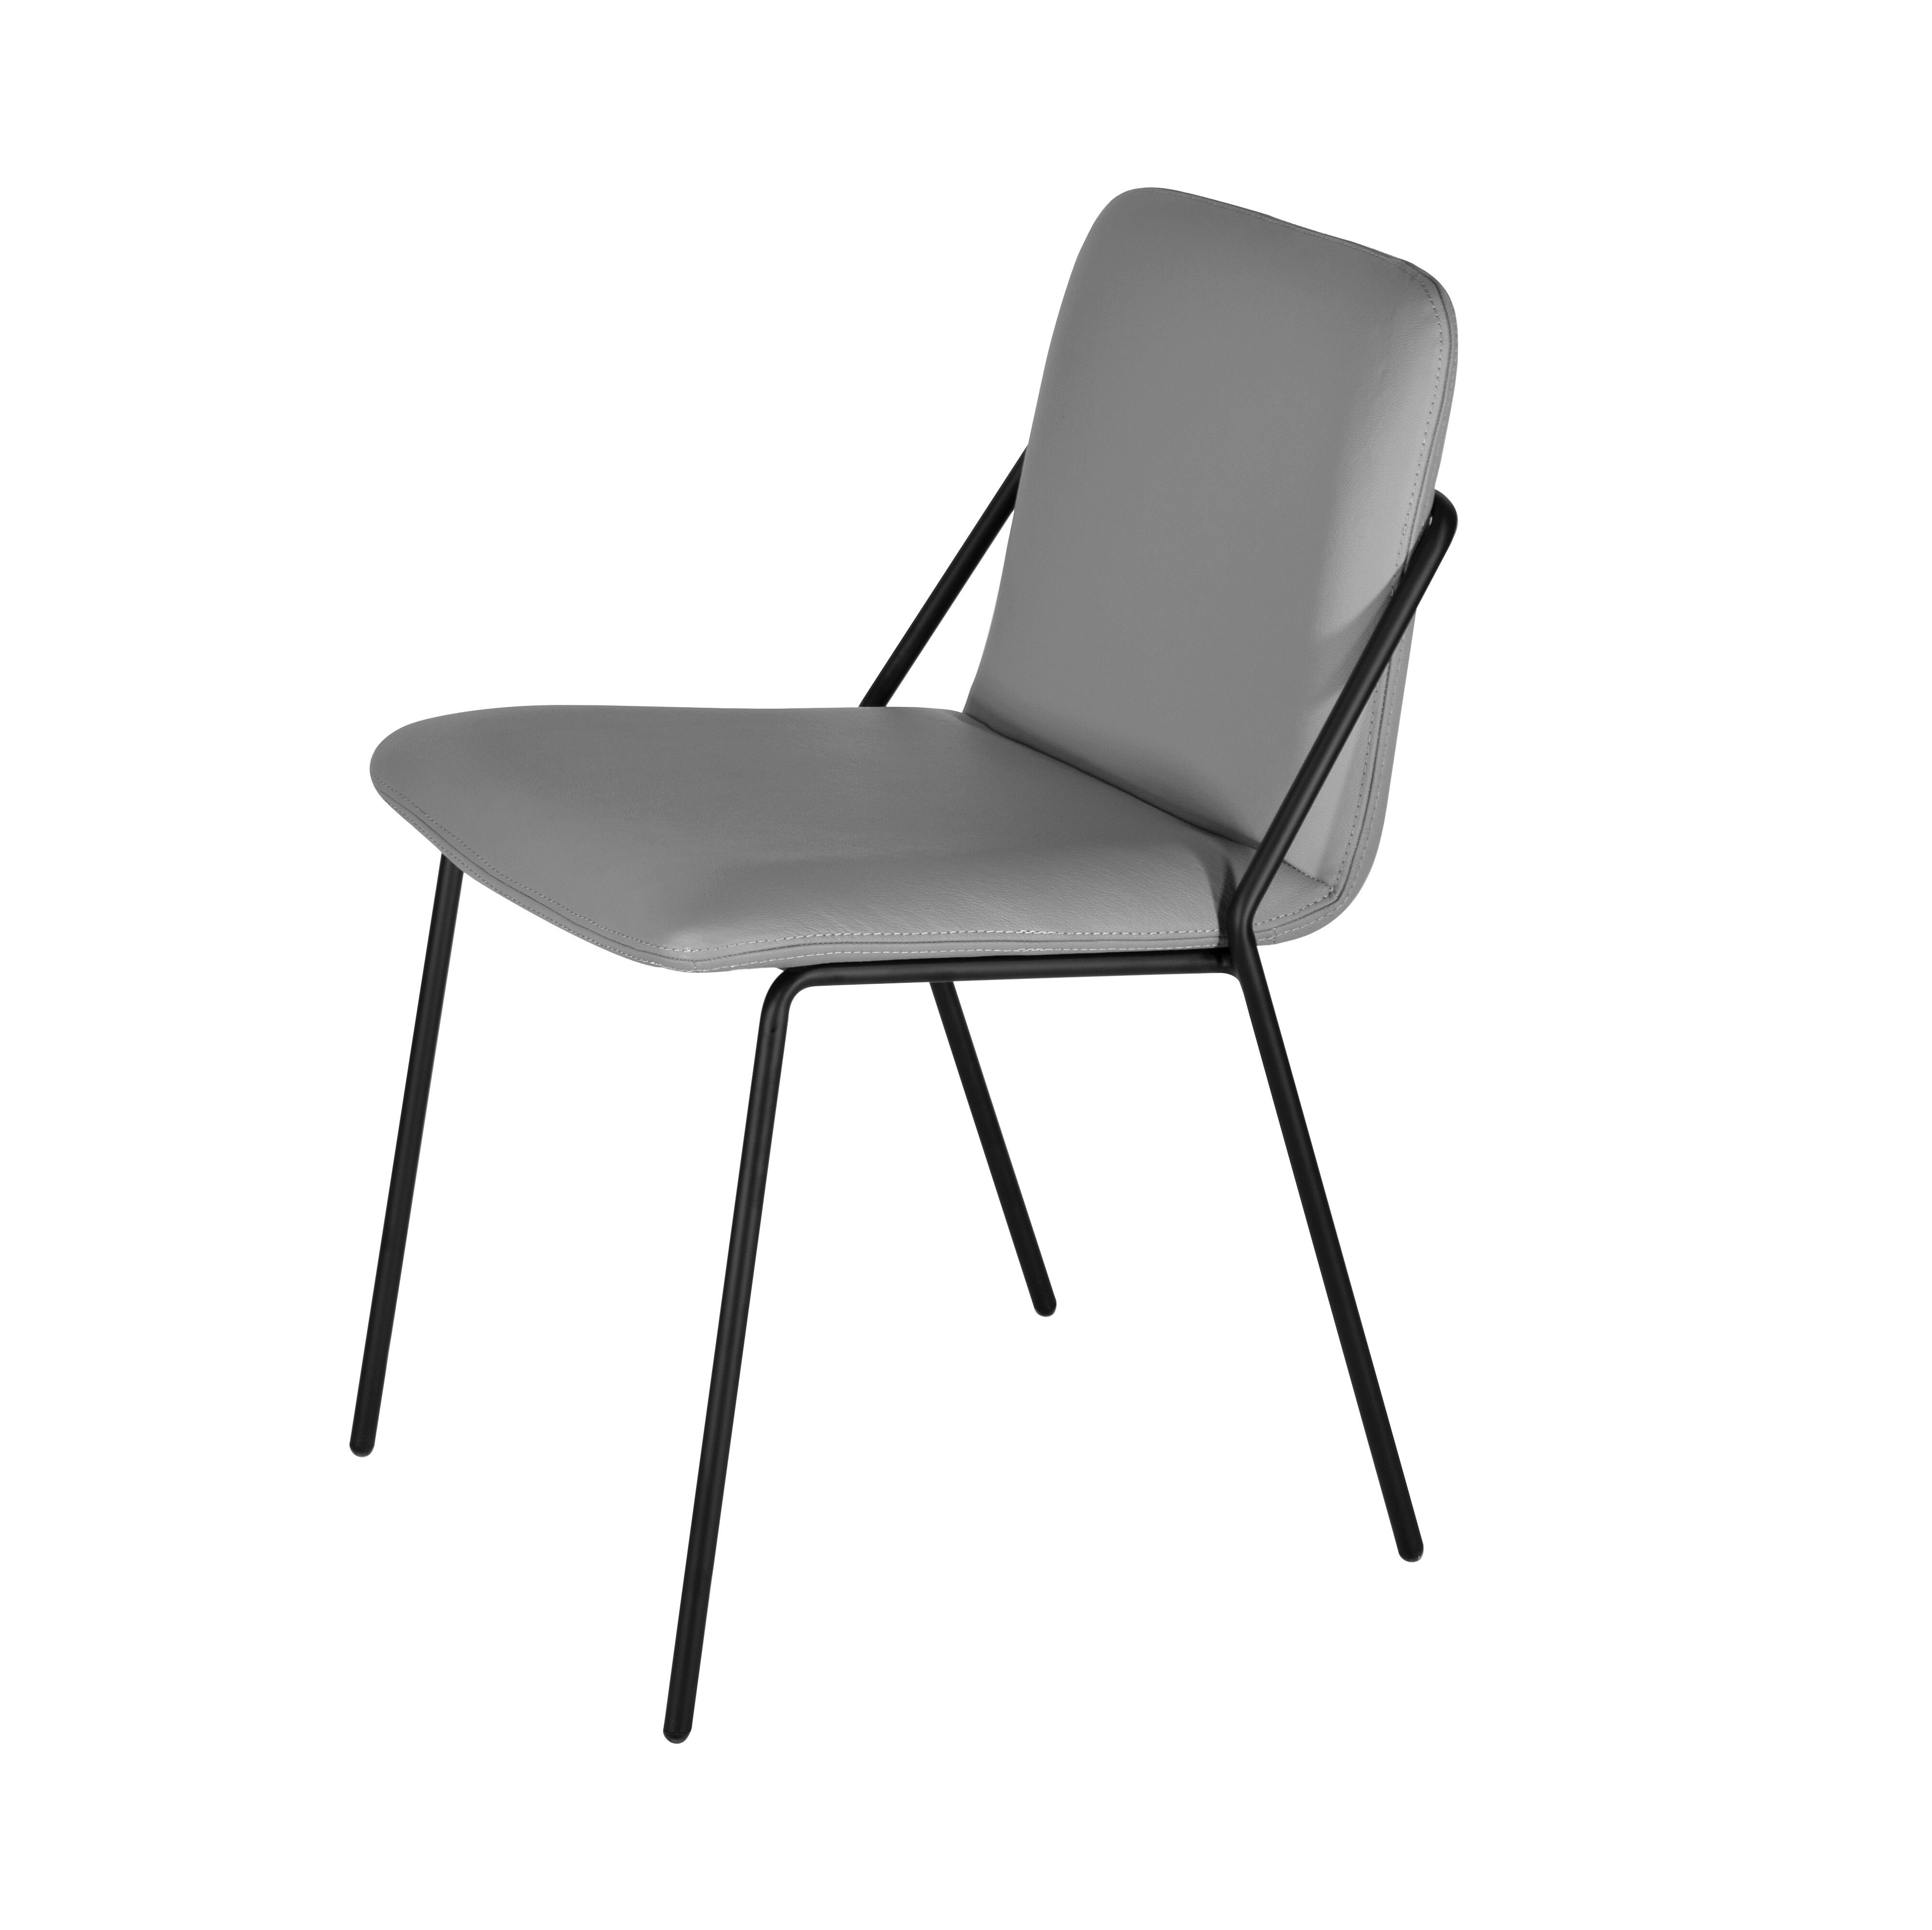 M A D Furniture Sling Eco Leather Upholstered Dining Chair Reviews Wayfair